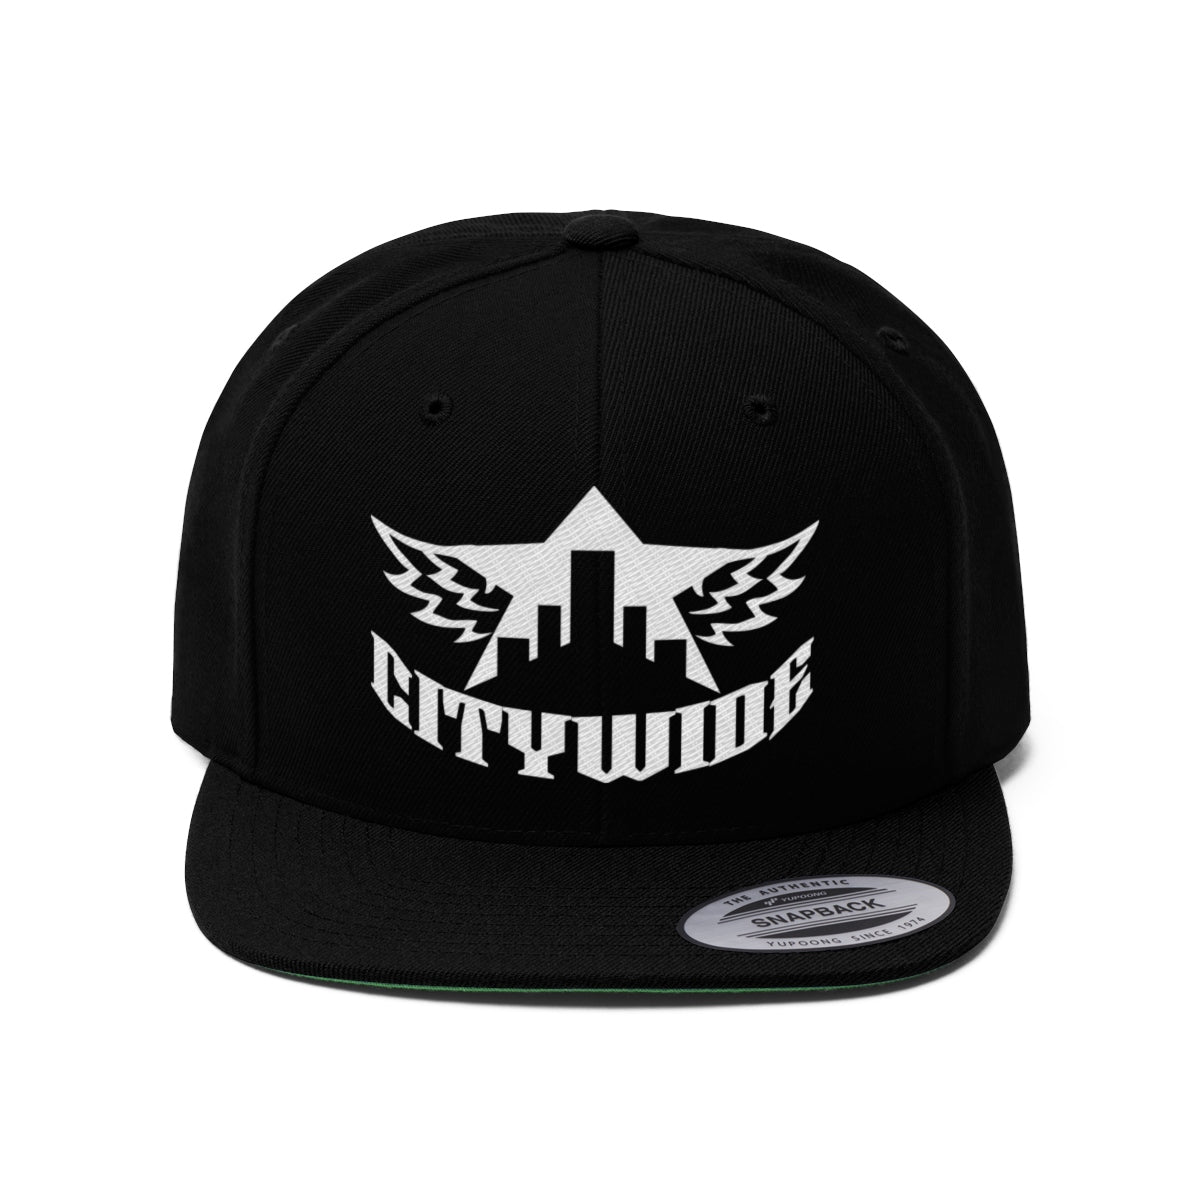 CityWide - Snapback Hat